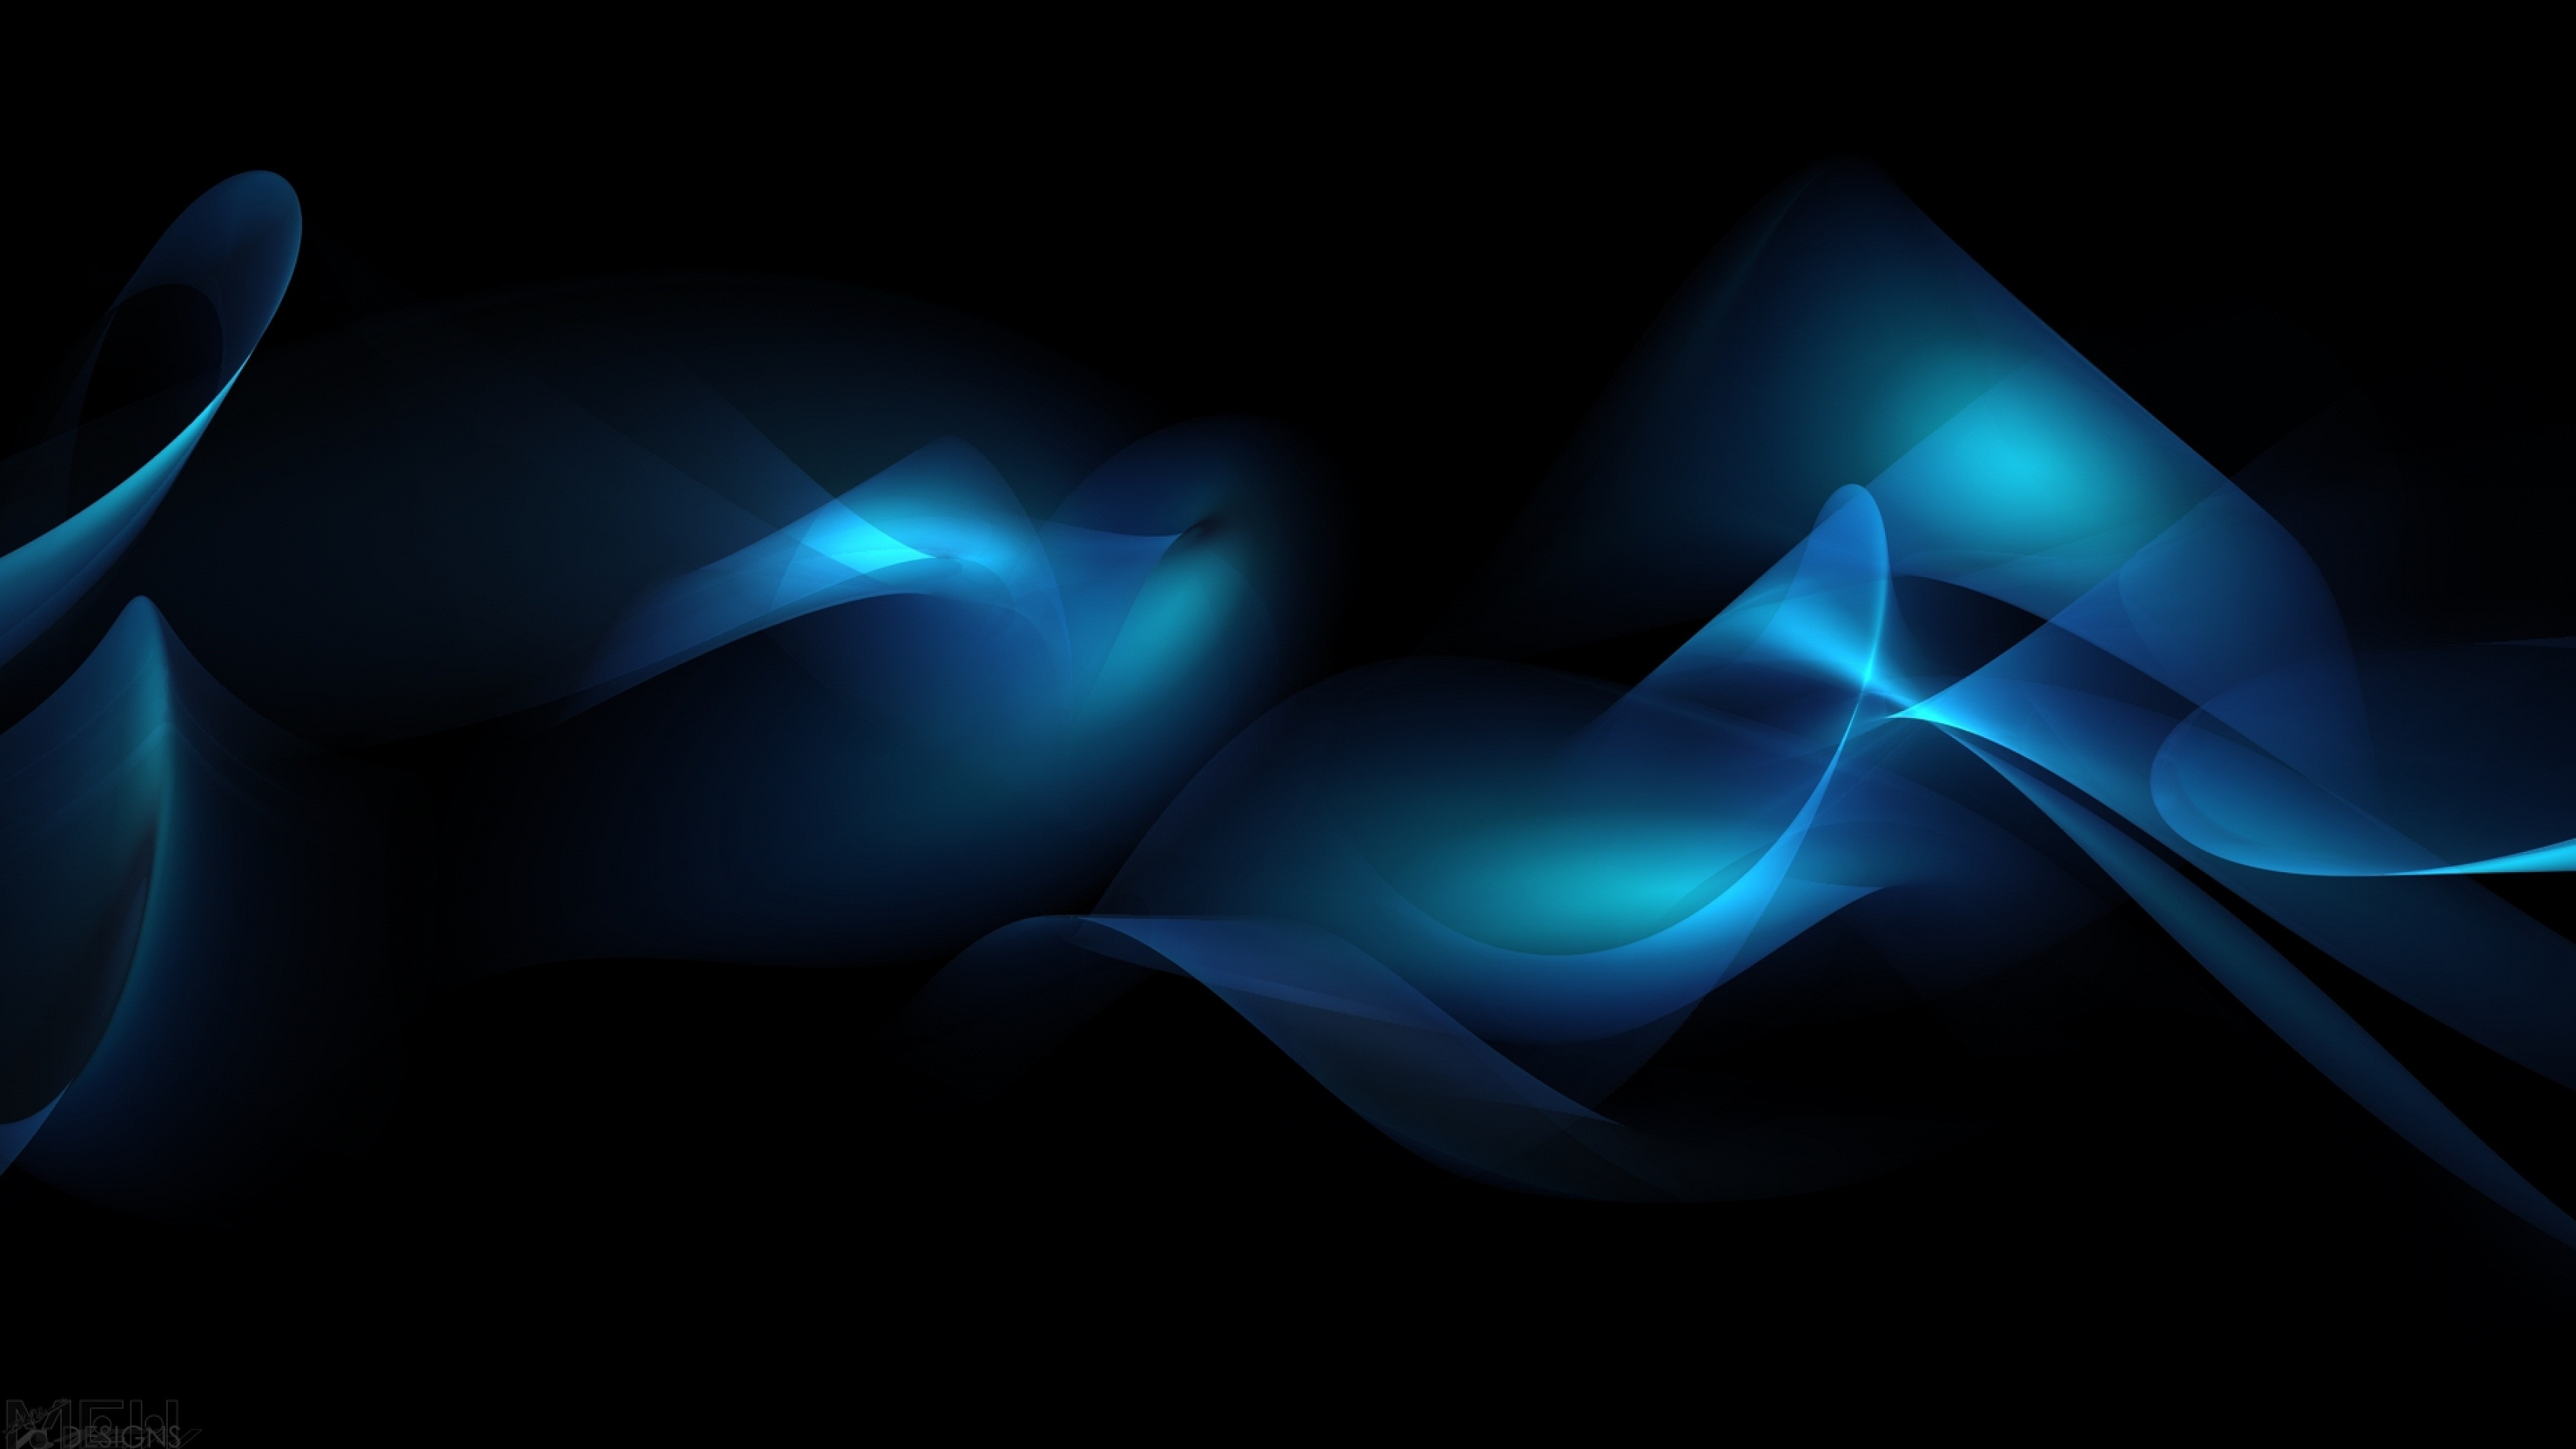 photos for dark blue abstract wallpaper 1080p hd pics smartphone